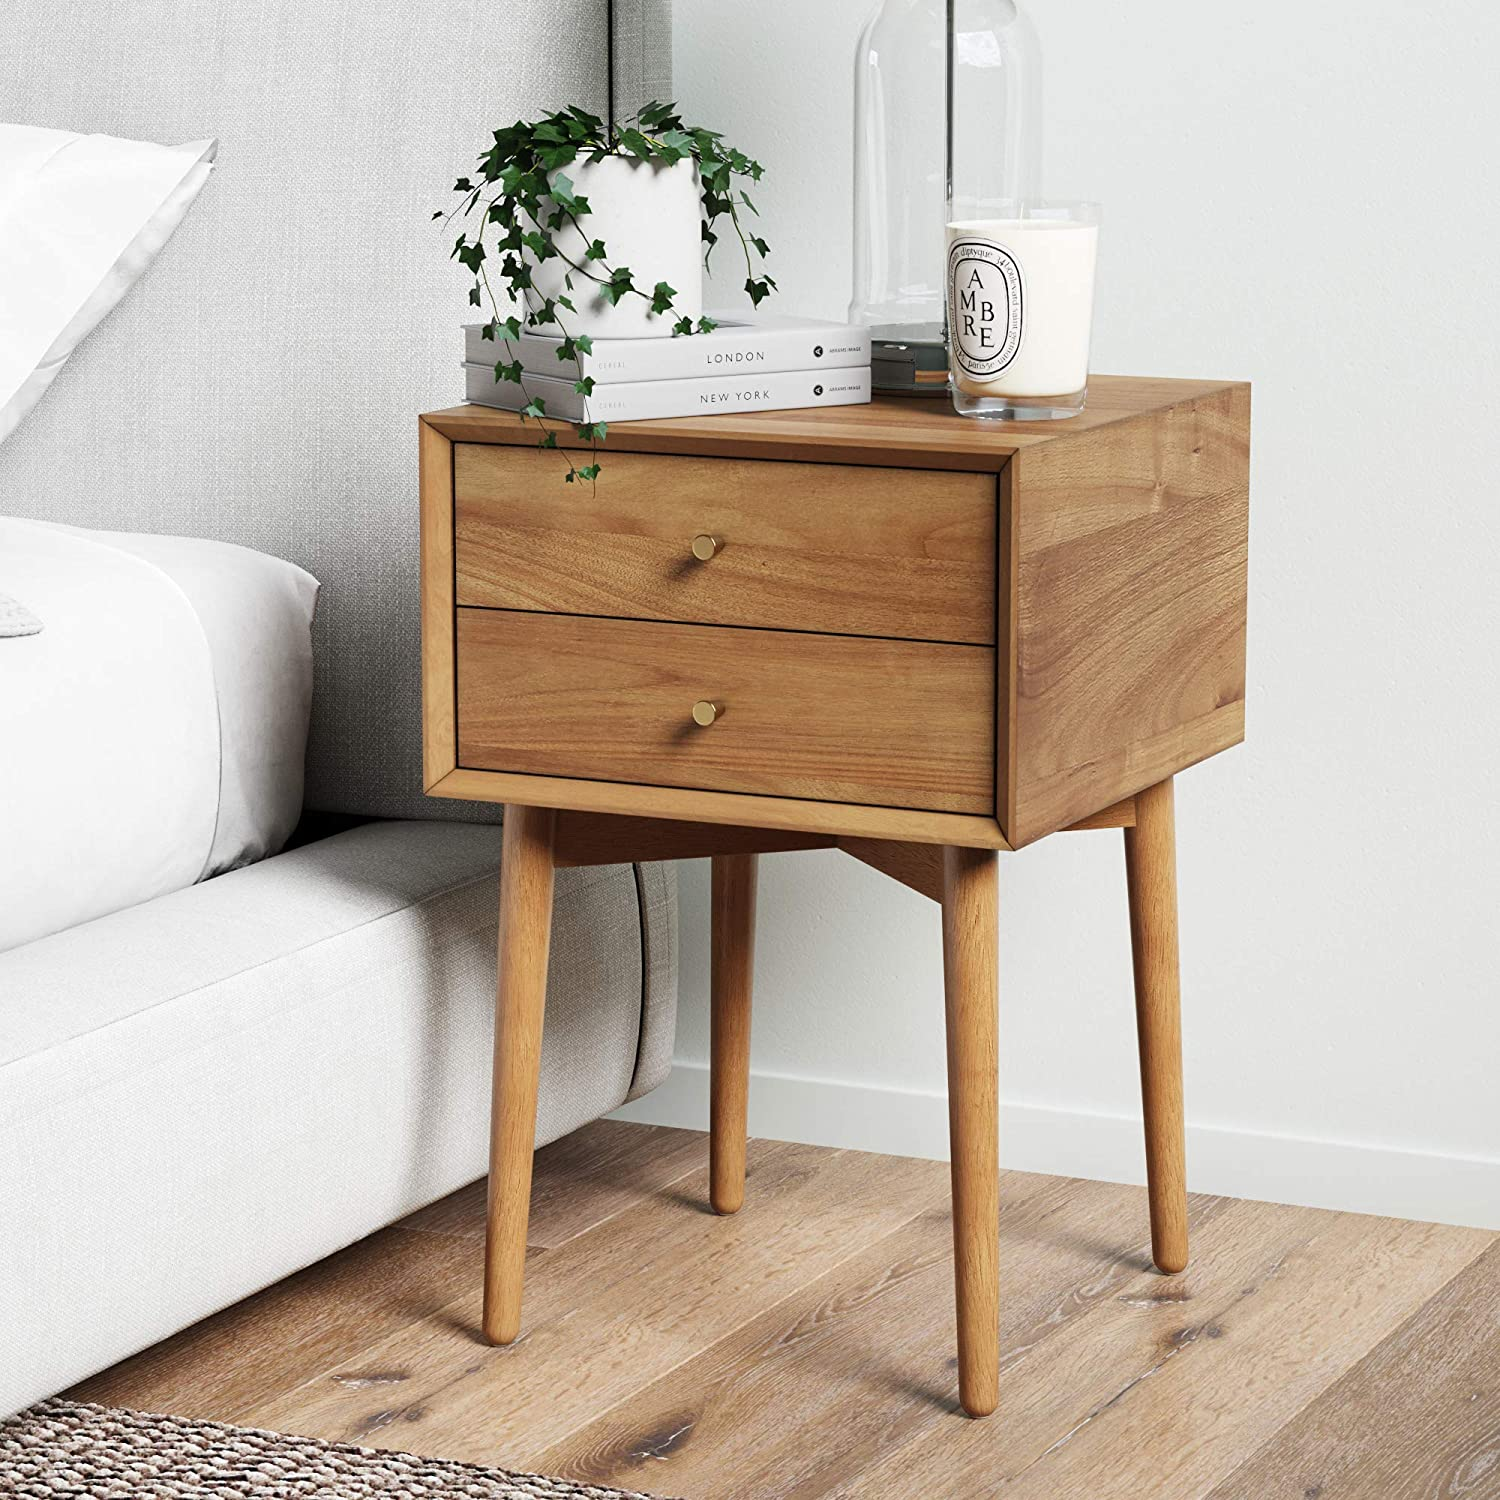 Nathan James 32704 Harper Mid-Century Oak Wood Nightstand with 2-Drawers, Small Side End Table with Storage, Brown